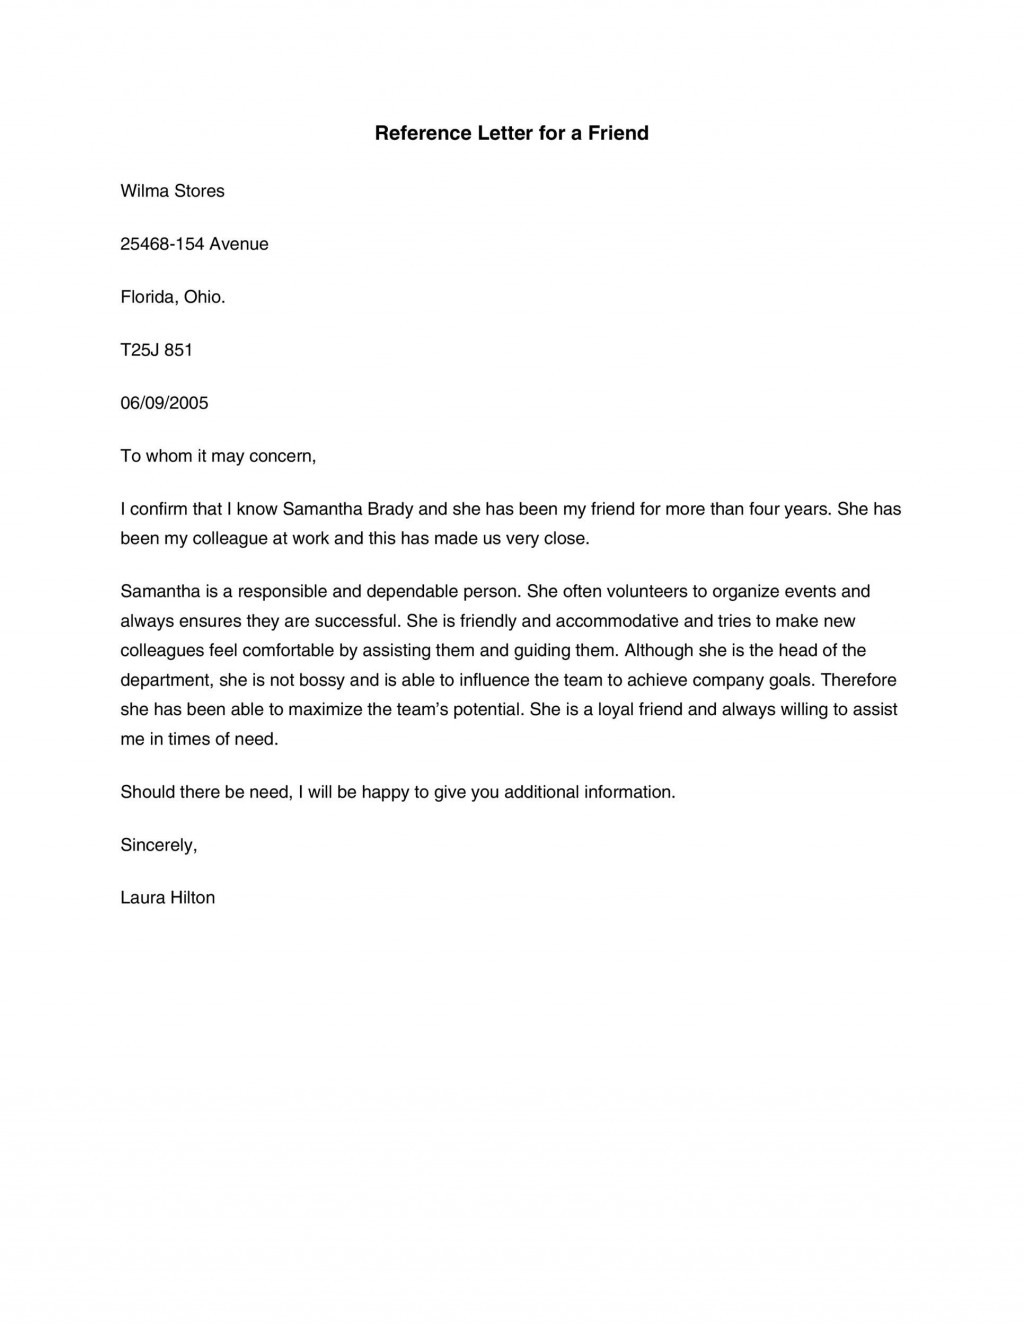 007 Astounding Free Reference Letter Template For Friend Example Large